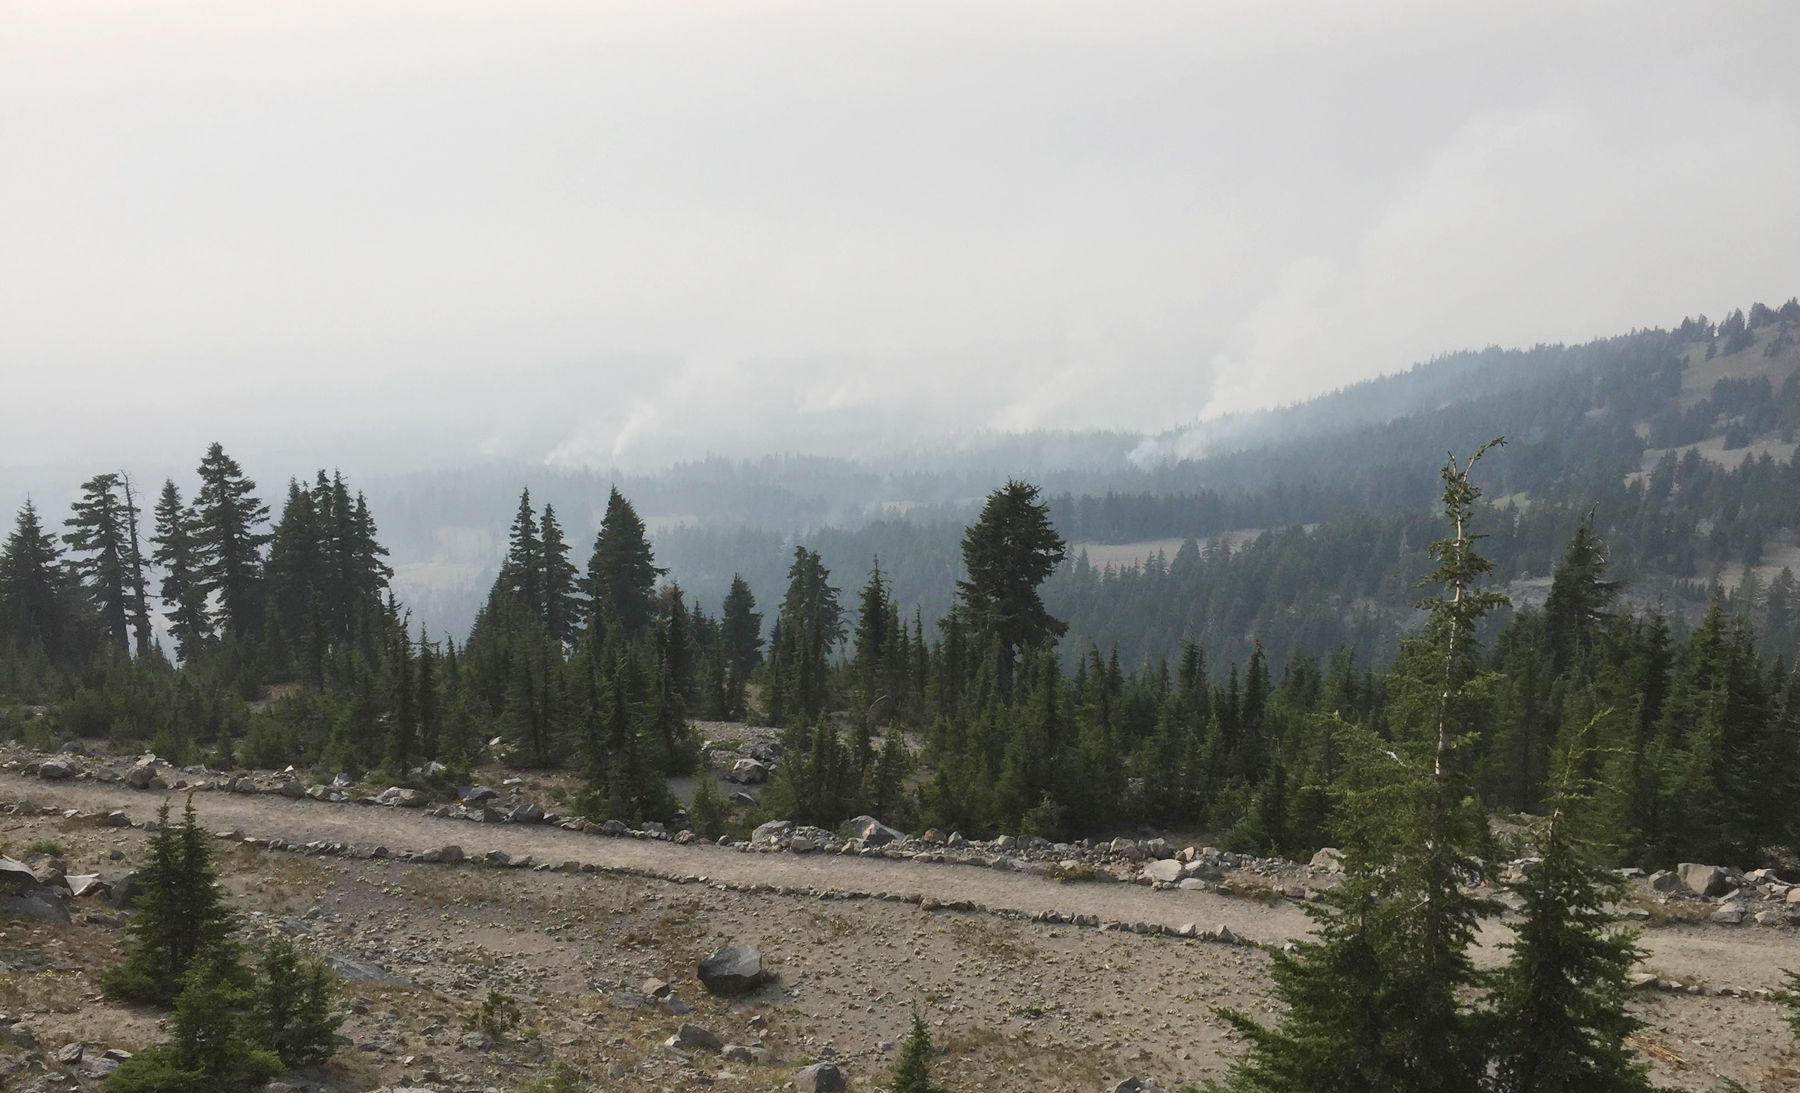 BC firefighter fined for breaking campfire ban